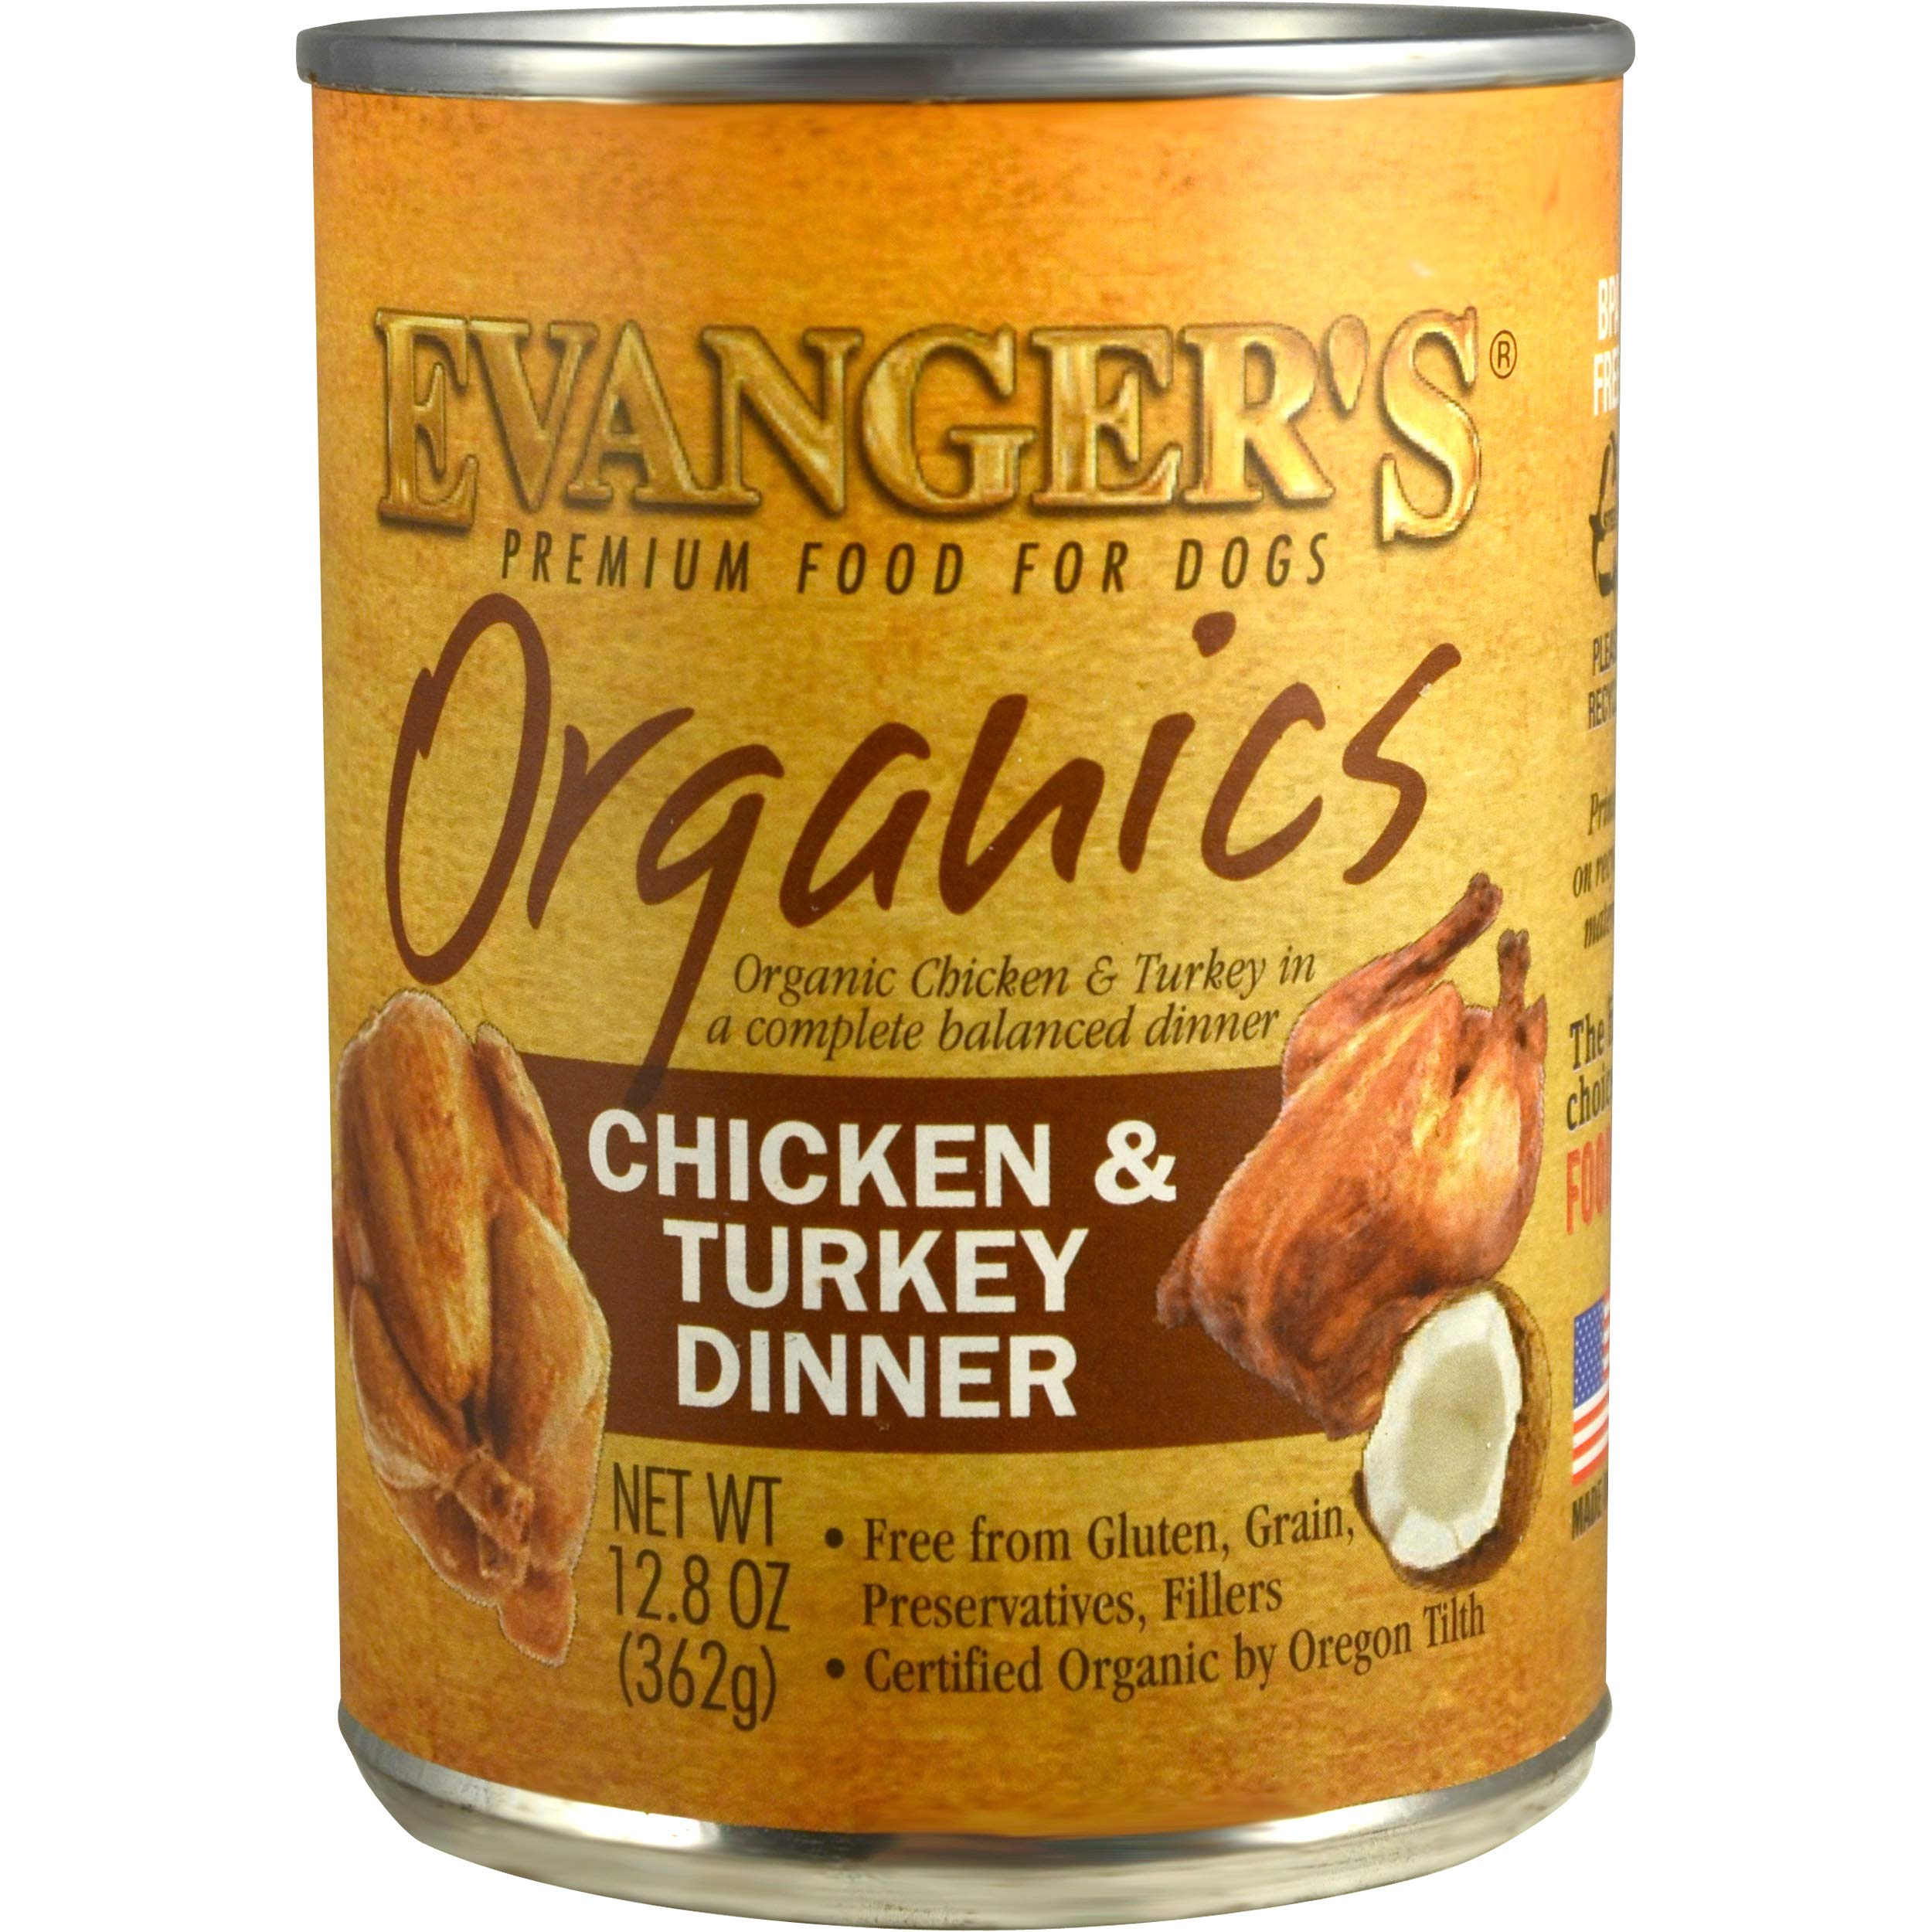 Evanger's Organics Chicken & Turkey with Coconut Oil for Dogs, 12 x 12.8 oz cans by Evanger's Dog & Cat Food Company, Inc.